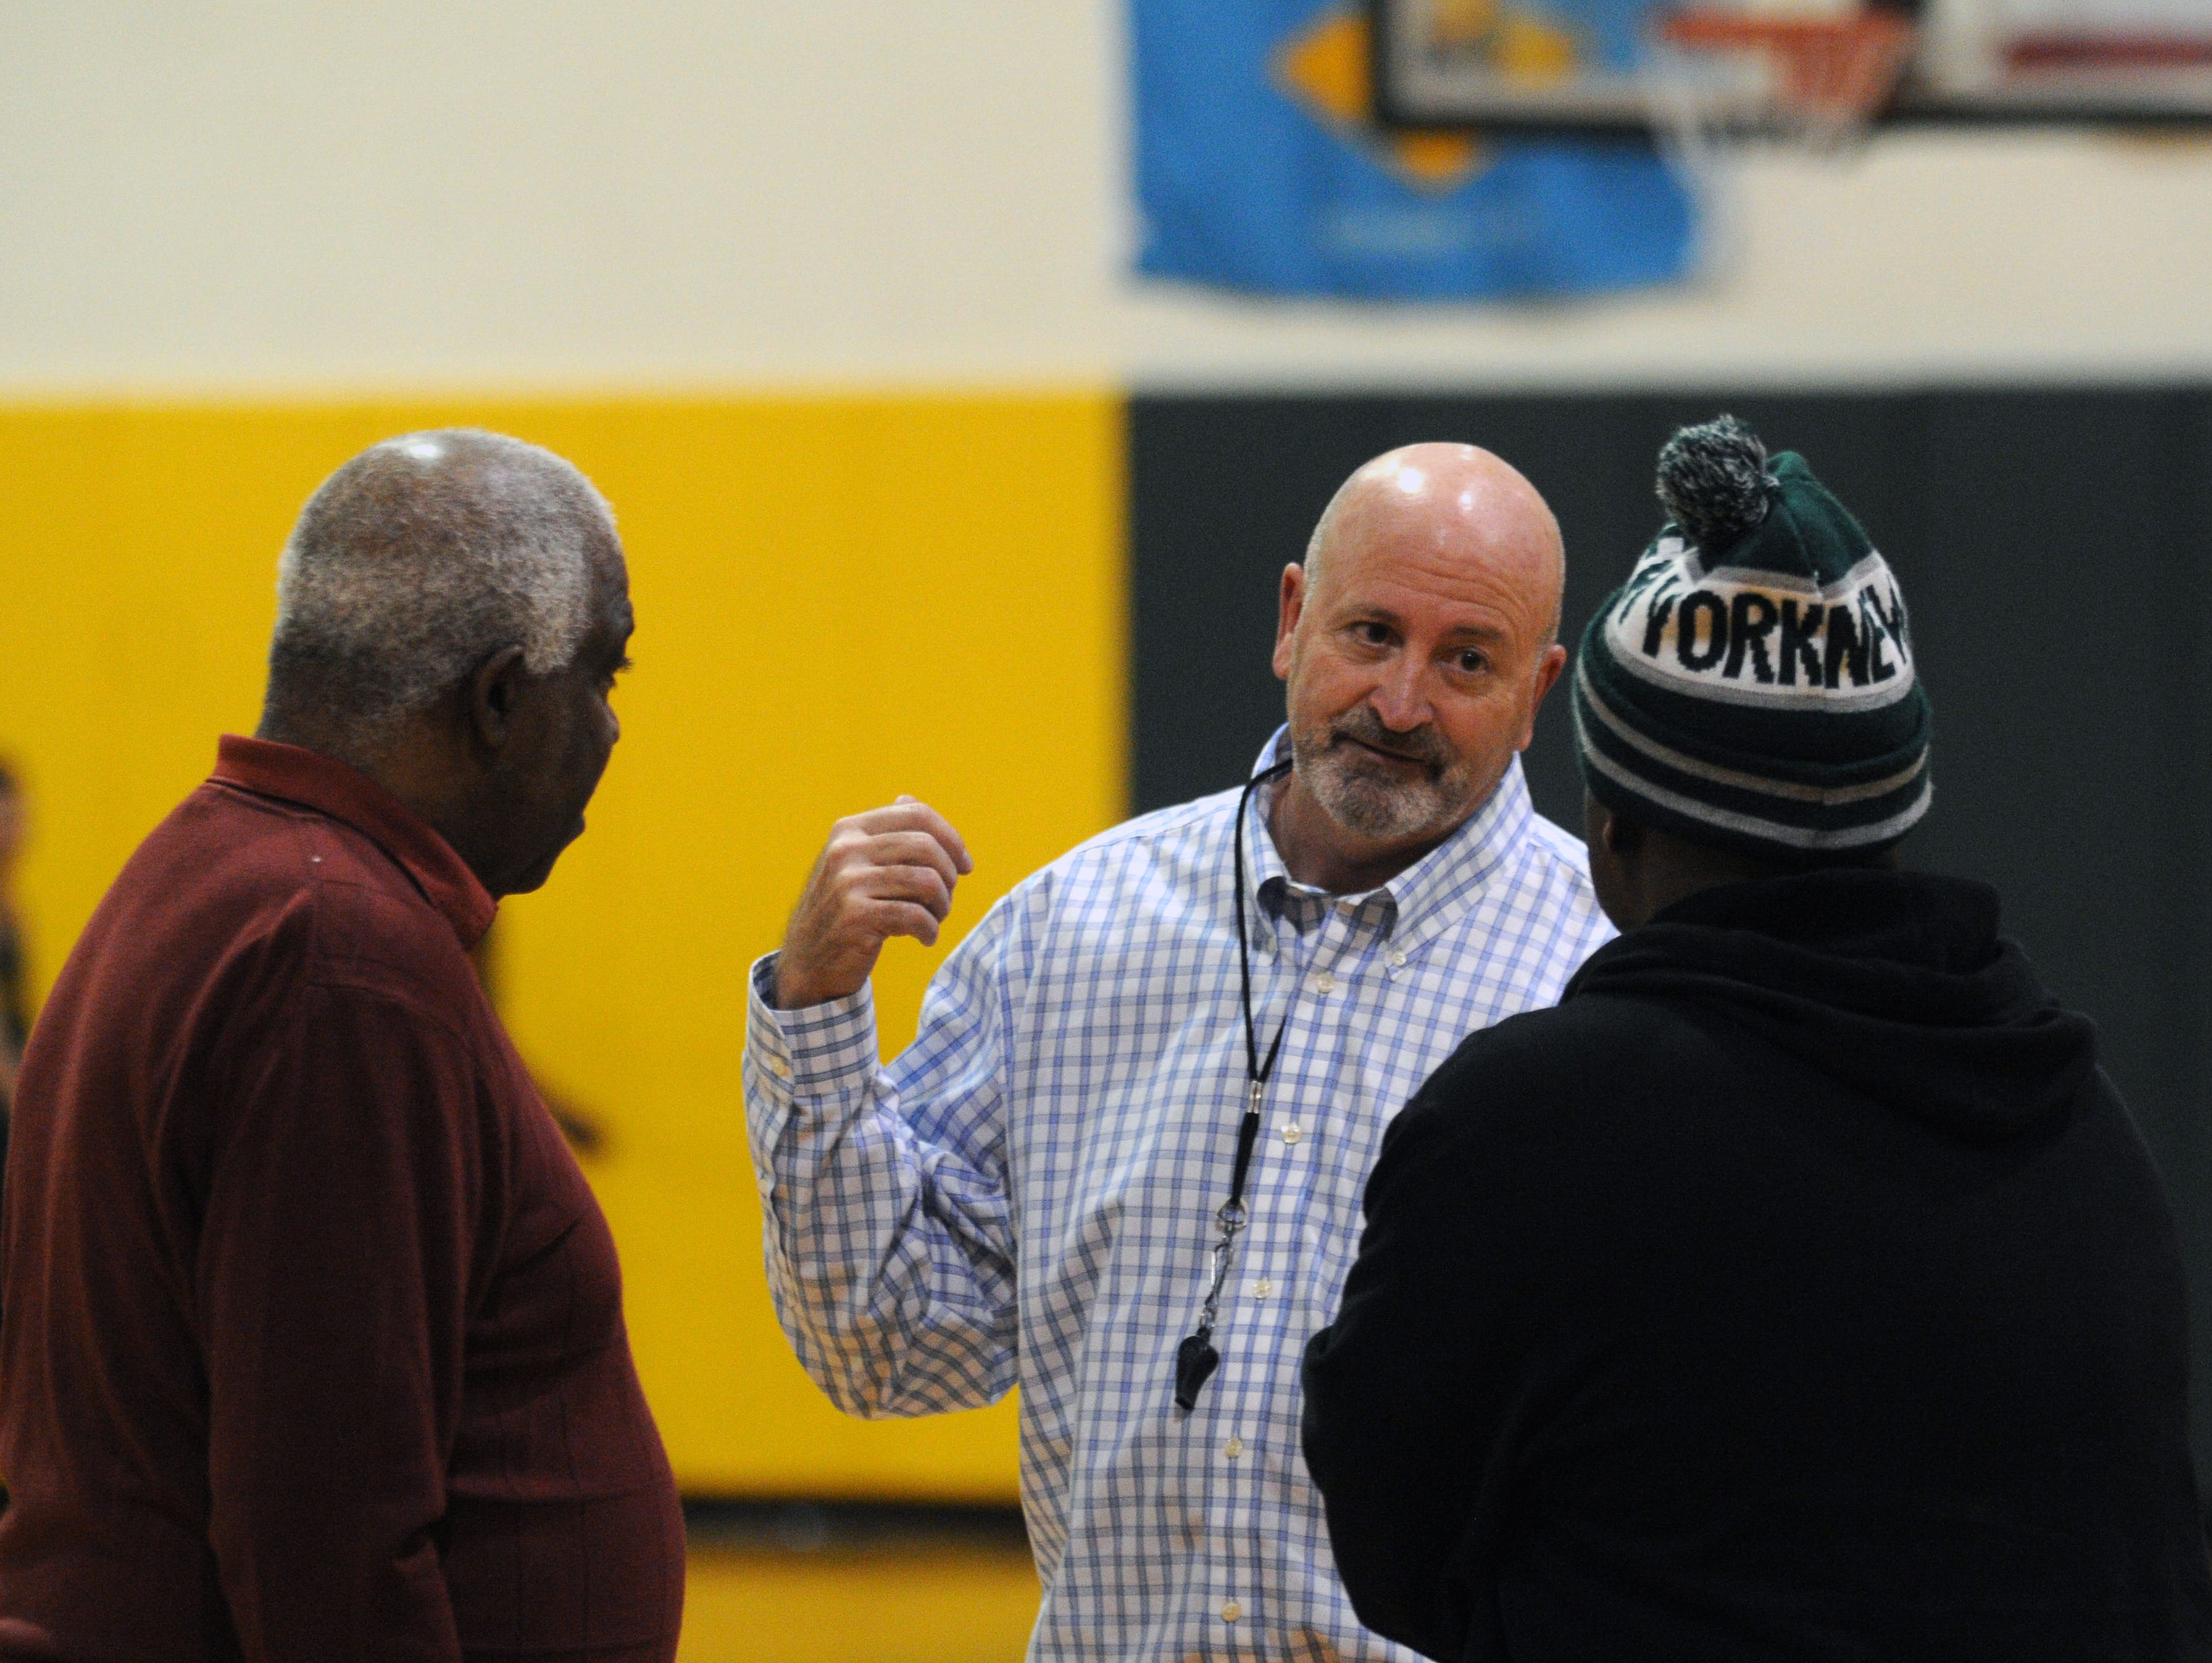 B.J. Joseph gets back in the coaching game, taking over as the head coach for Indian River basketball.